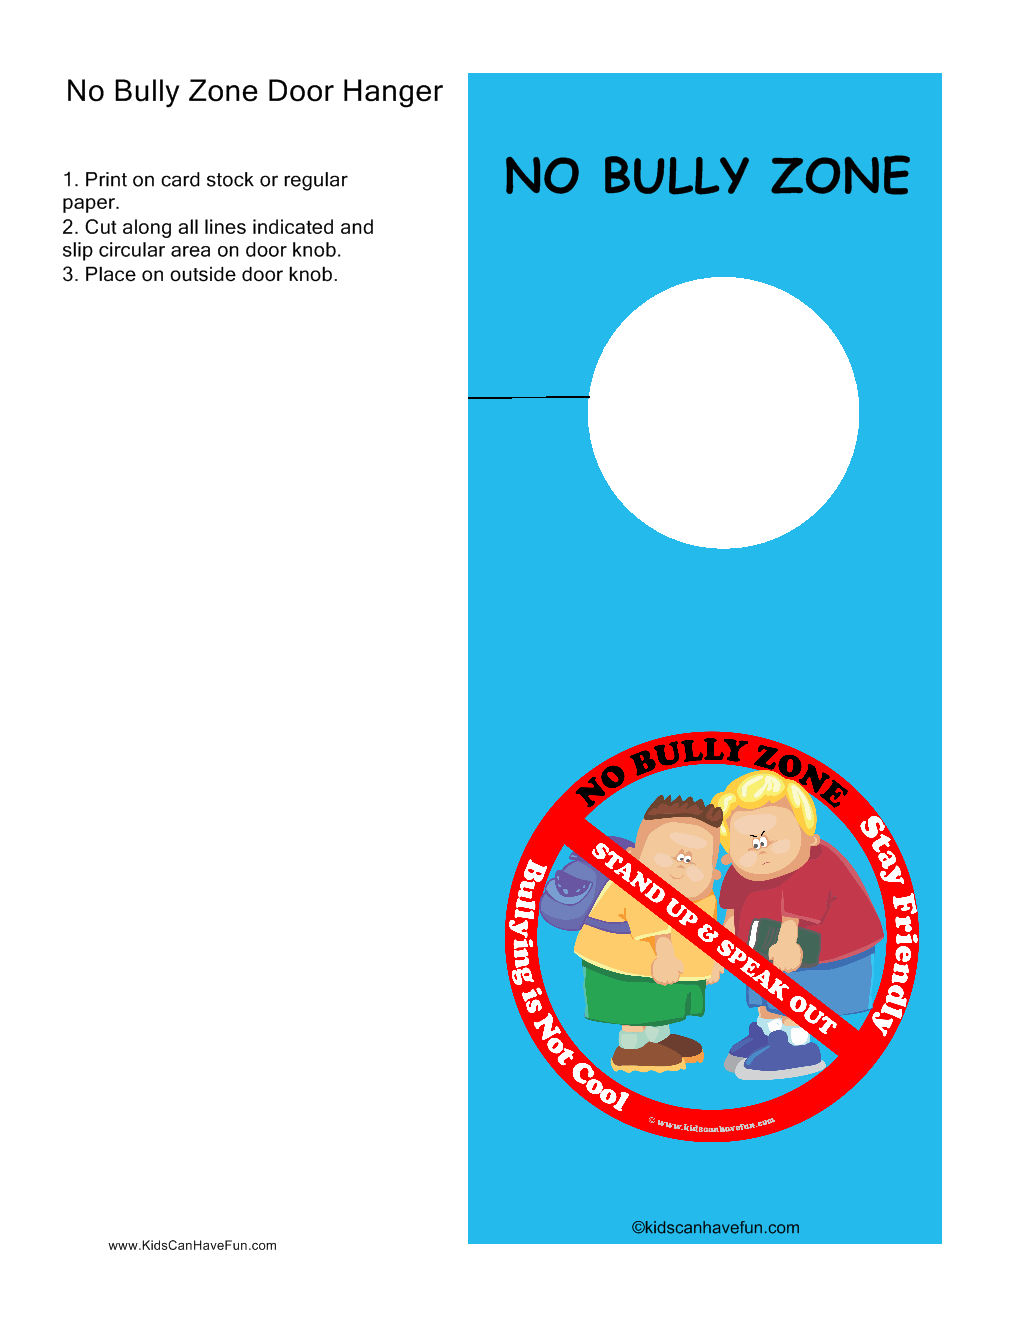 worksheet Bullying Worksheets how to prevent bullying worksheet no dont bully anti stop activities with posters signs labels stickers and worksheets for kids display at school ho